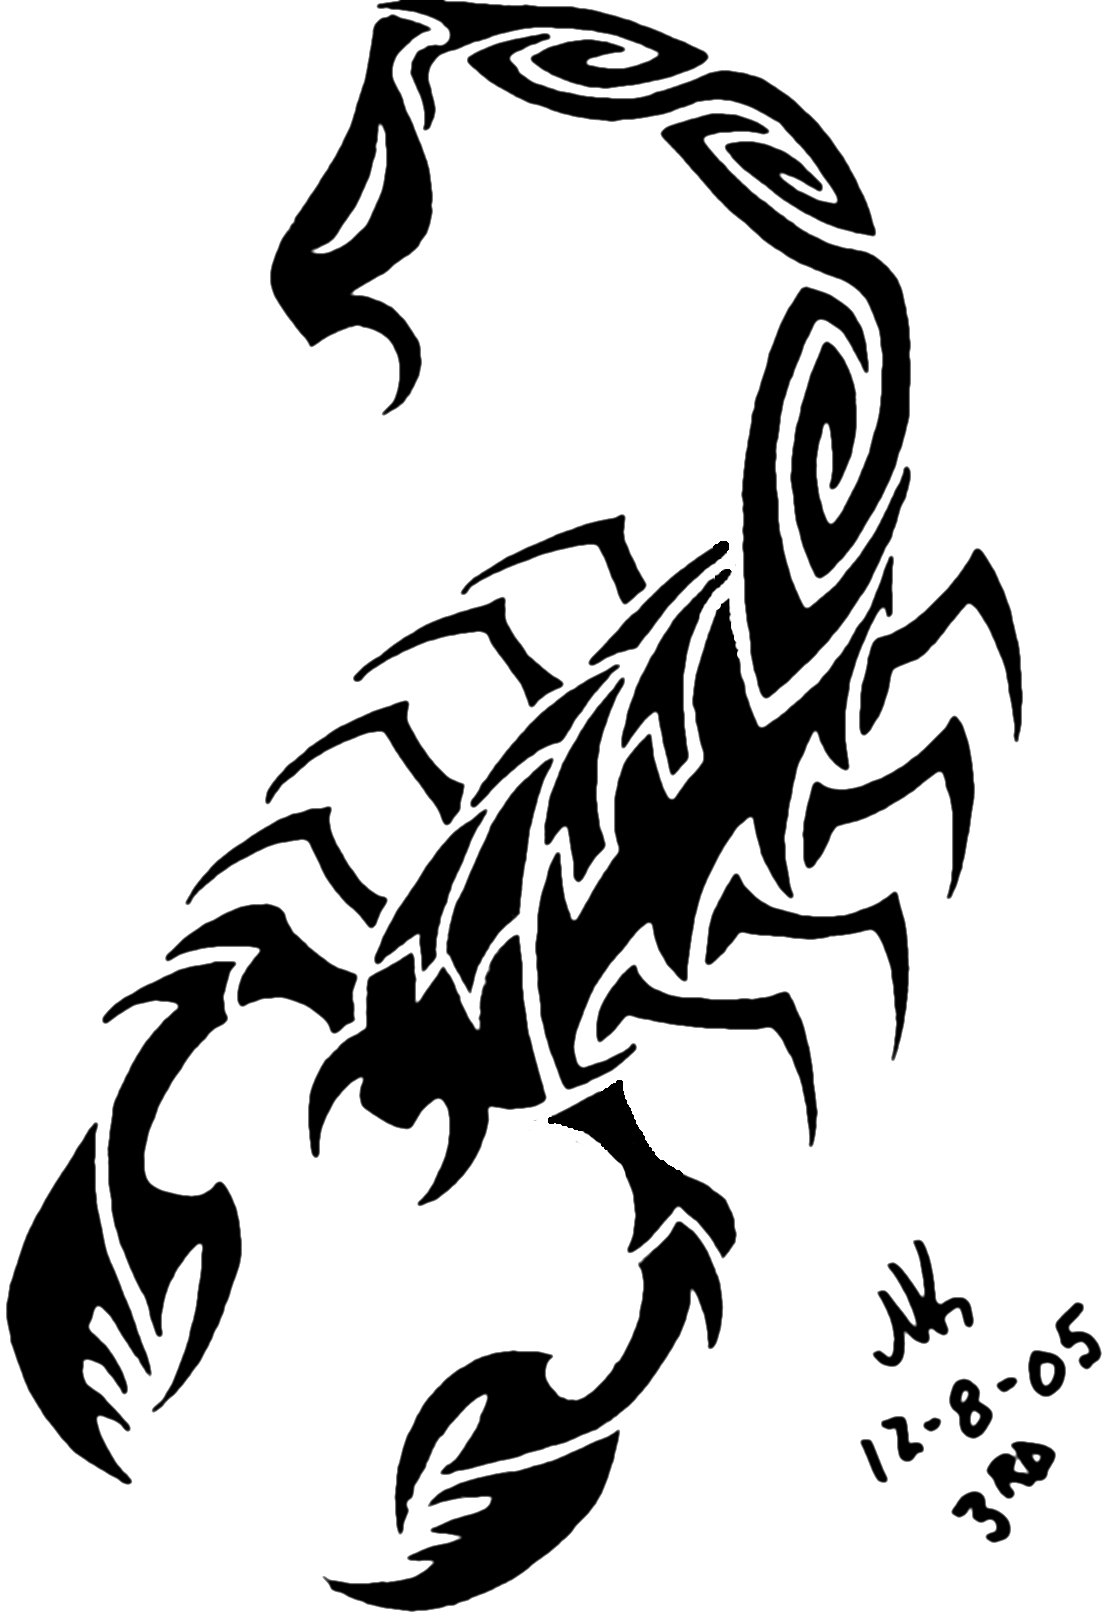 Drawn scorpion pencil drawing Scorpion 4th Drawings Easy by